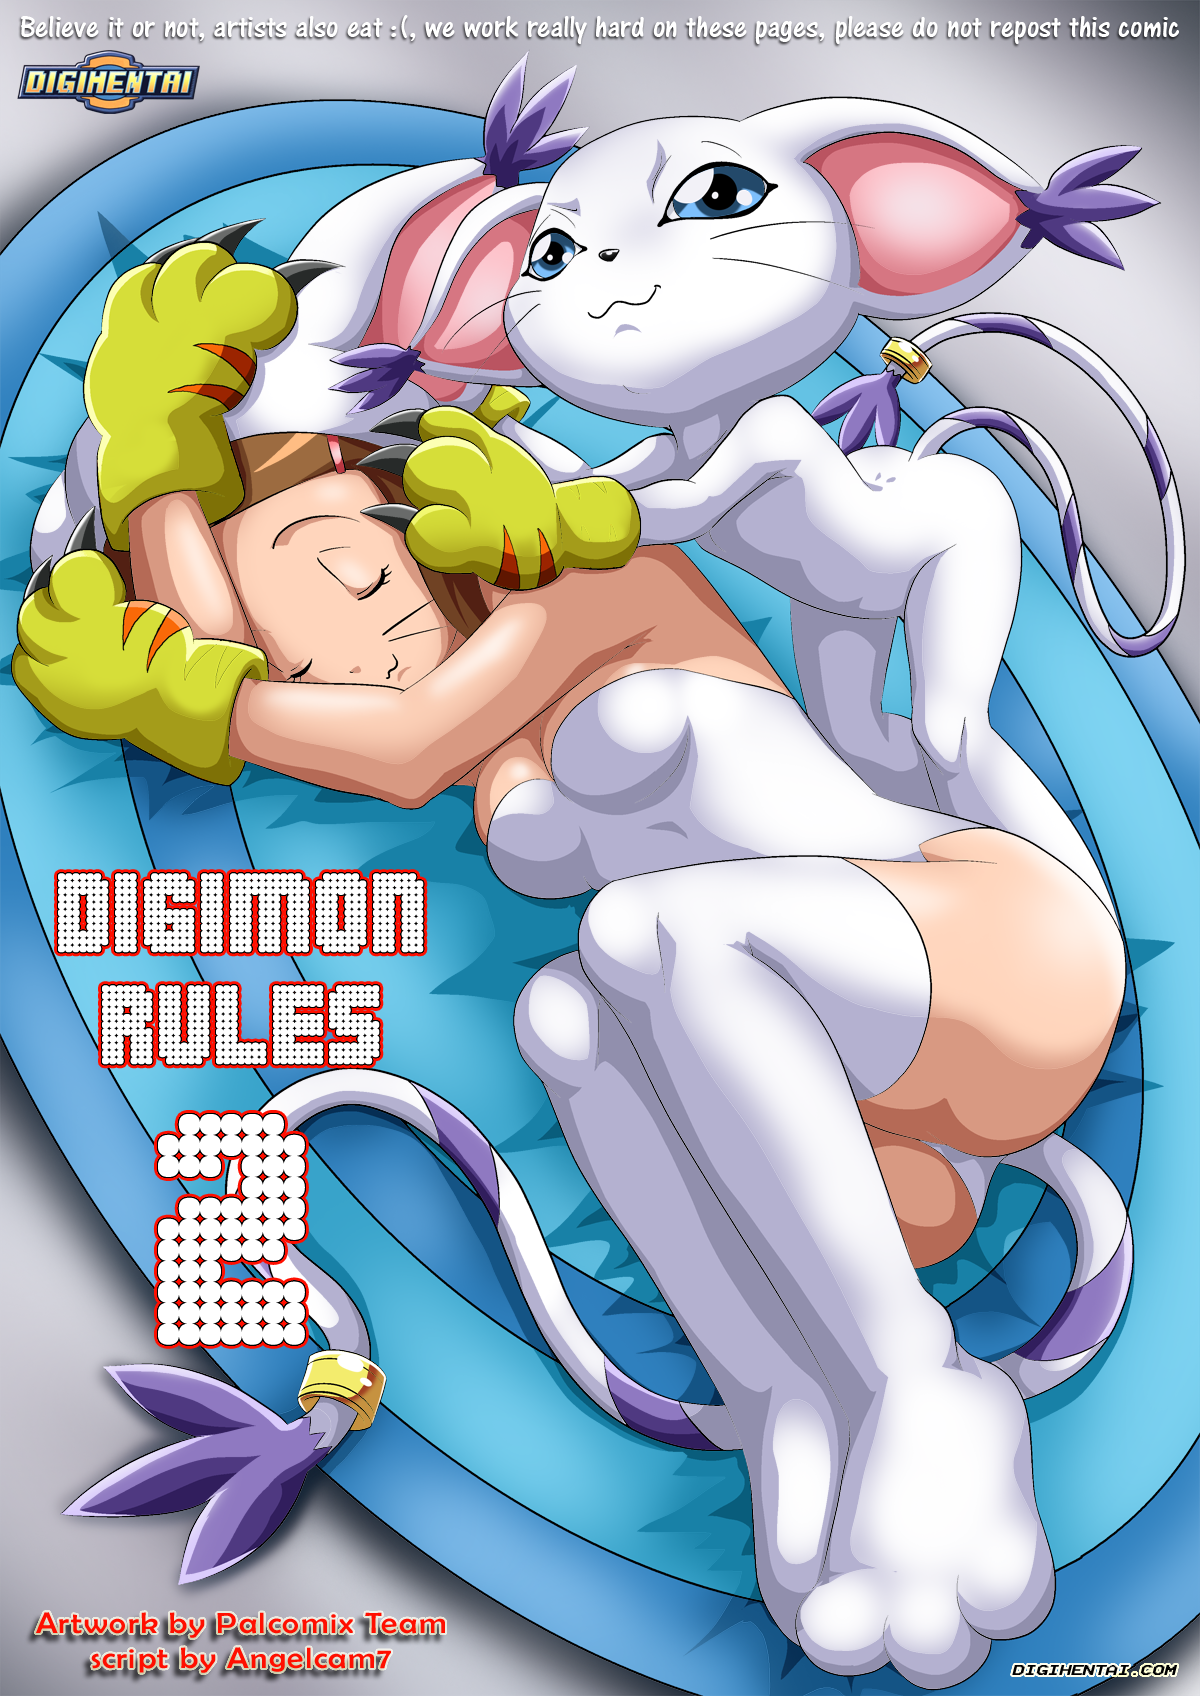 Goodcomix.tk Digimon Adventure - [Palcomix][DigiHentai] - Digimon Rules 2